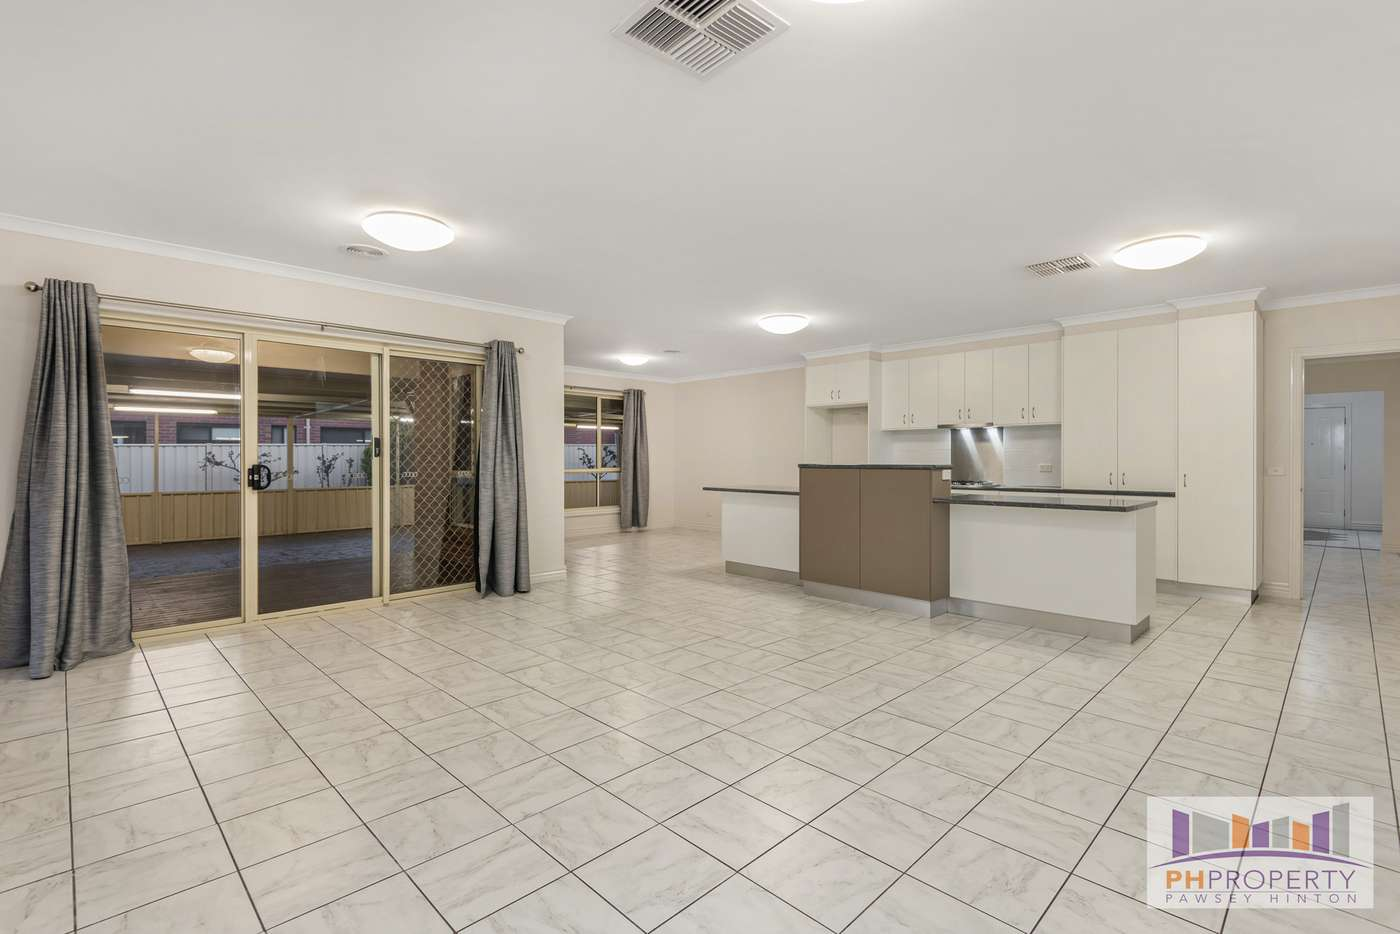 Fifth view of Homely house listing, 83 Monsants Road, Maiden Gully VIC 3551